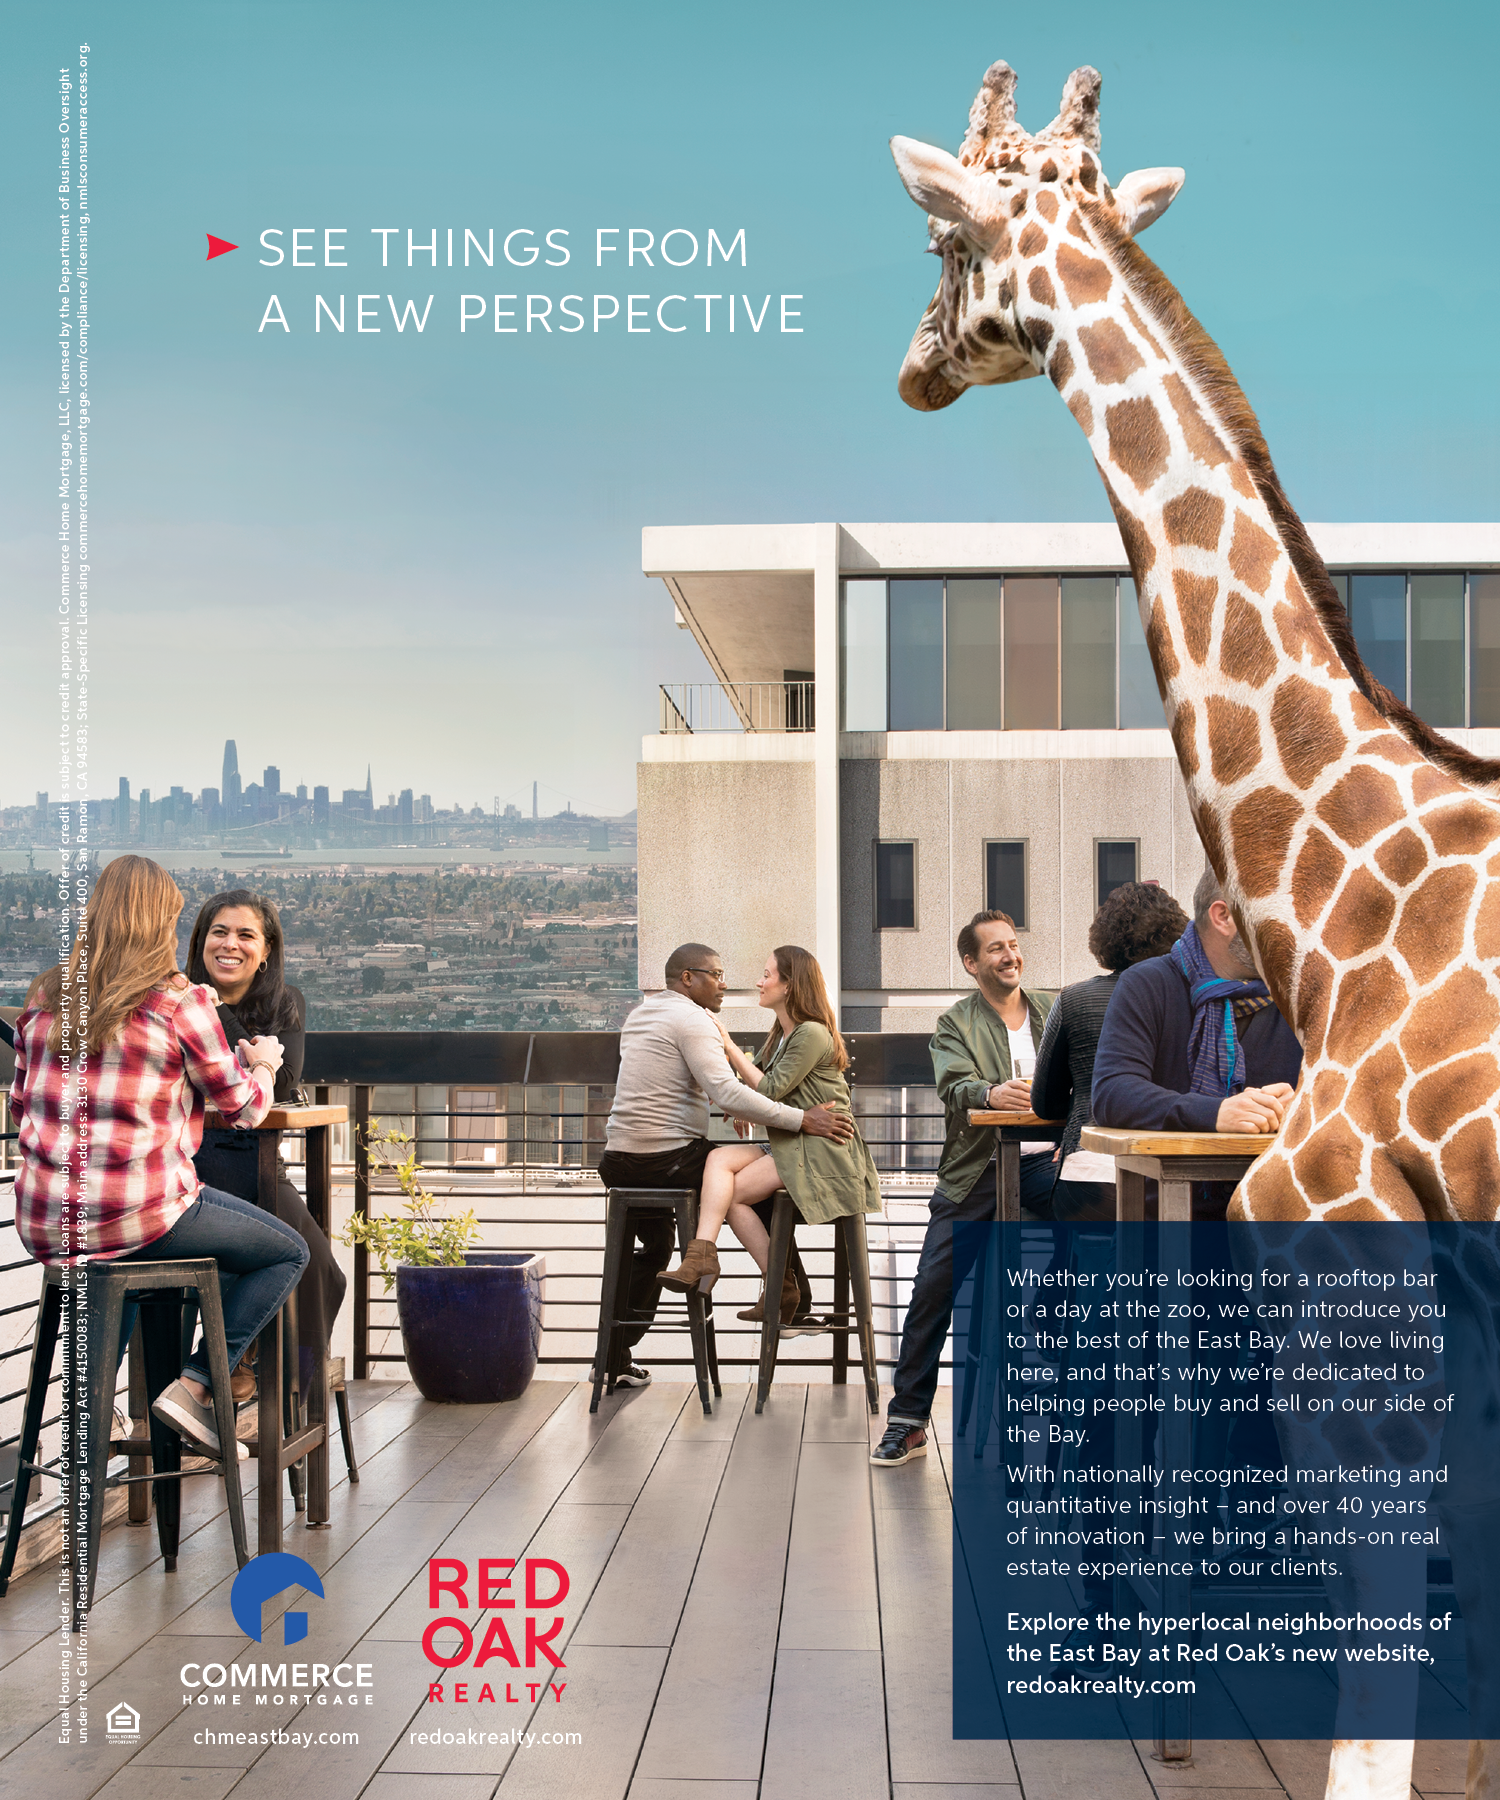 San Francisco Magazine | June 2019 | Red Oak Realty 2019 ad campaign